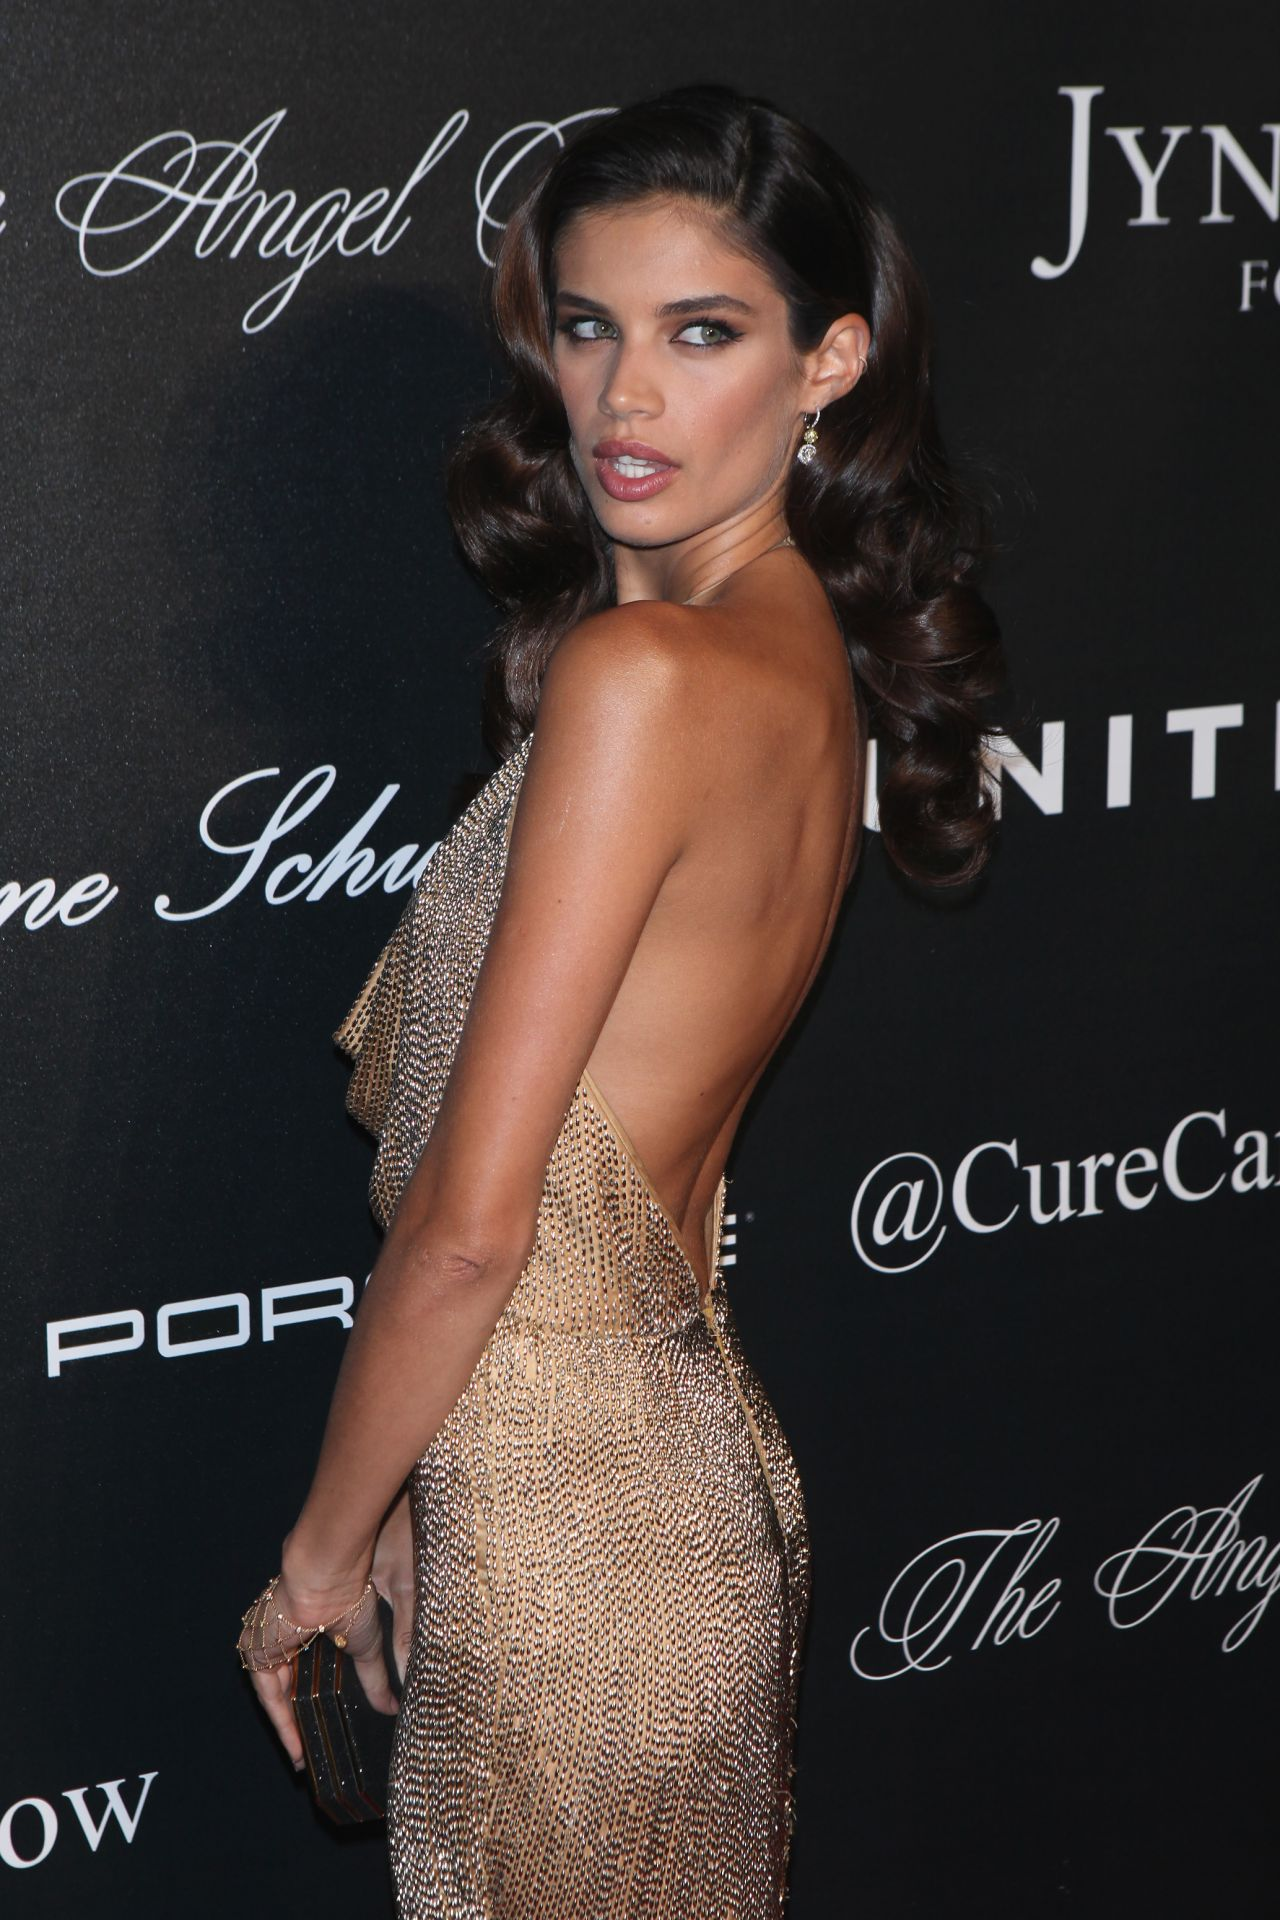 Sara Sampaio Plastic Surgery Before And After Photos